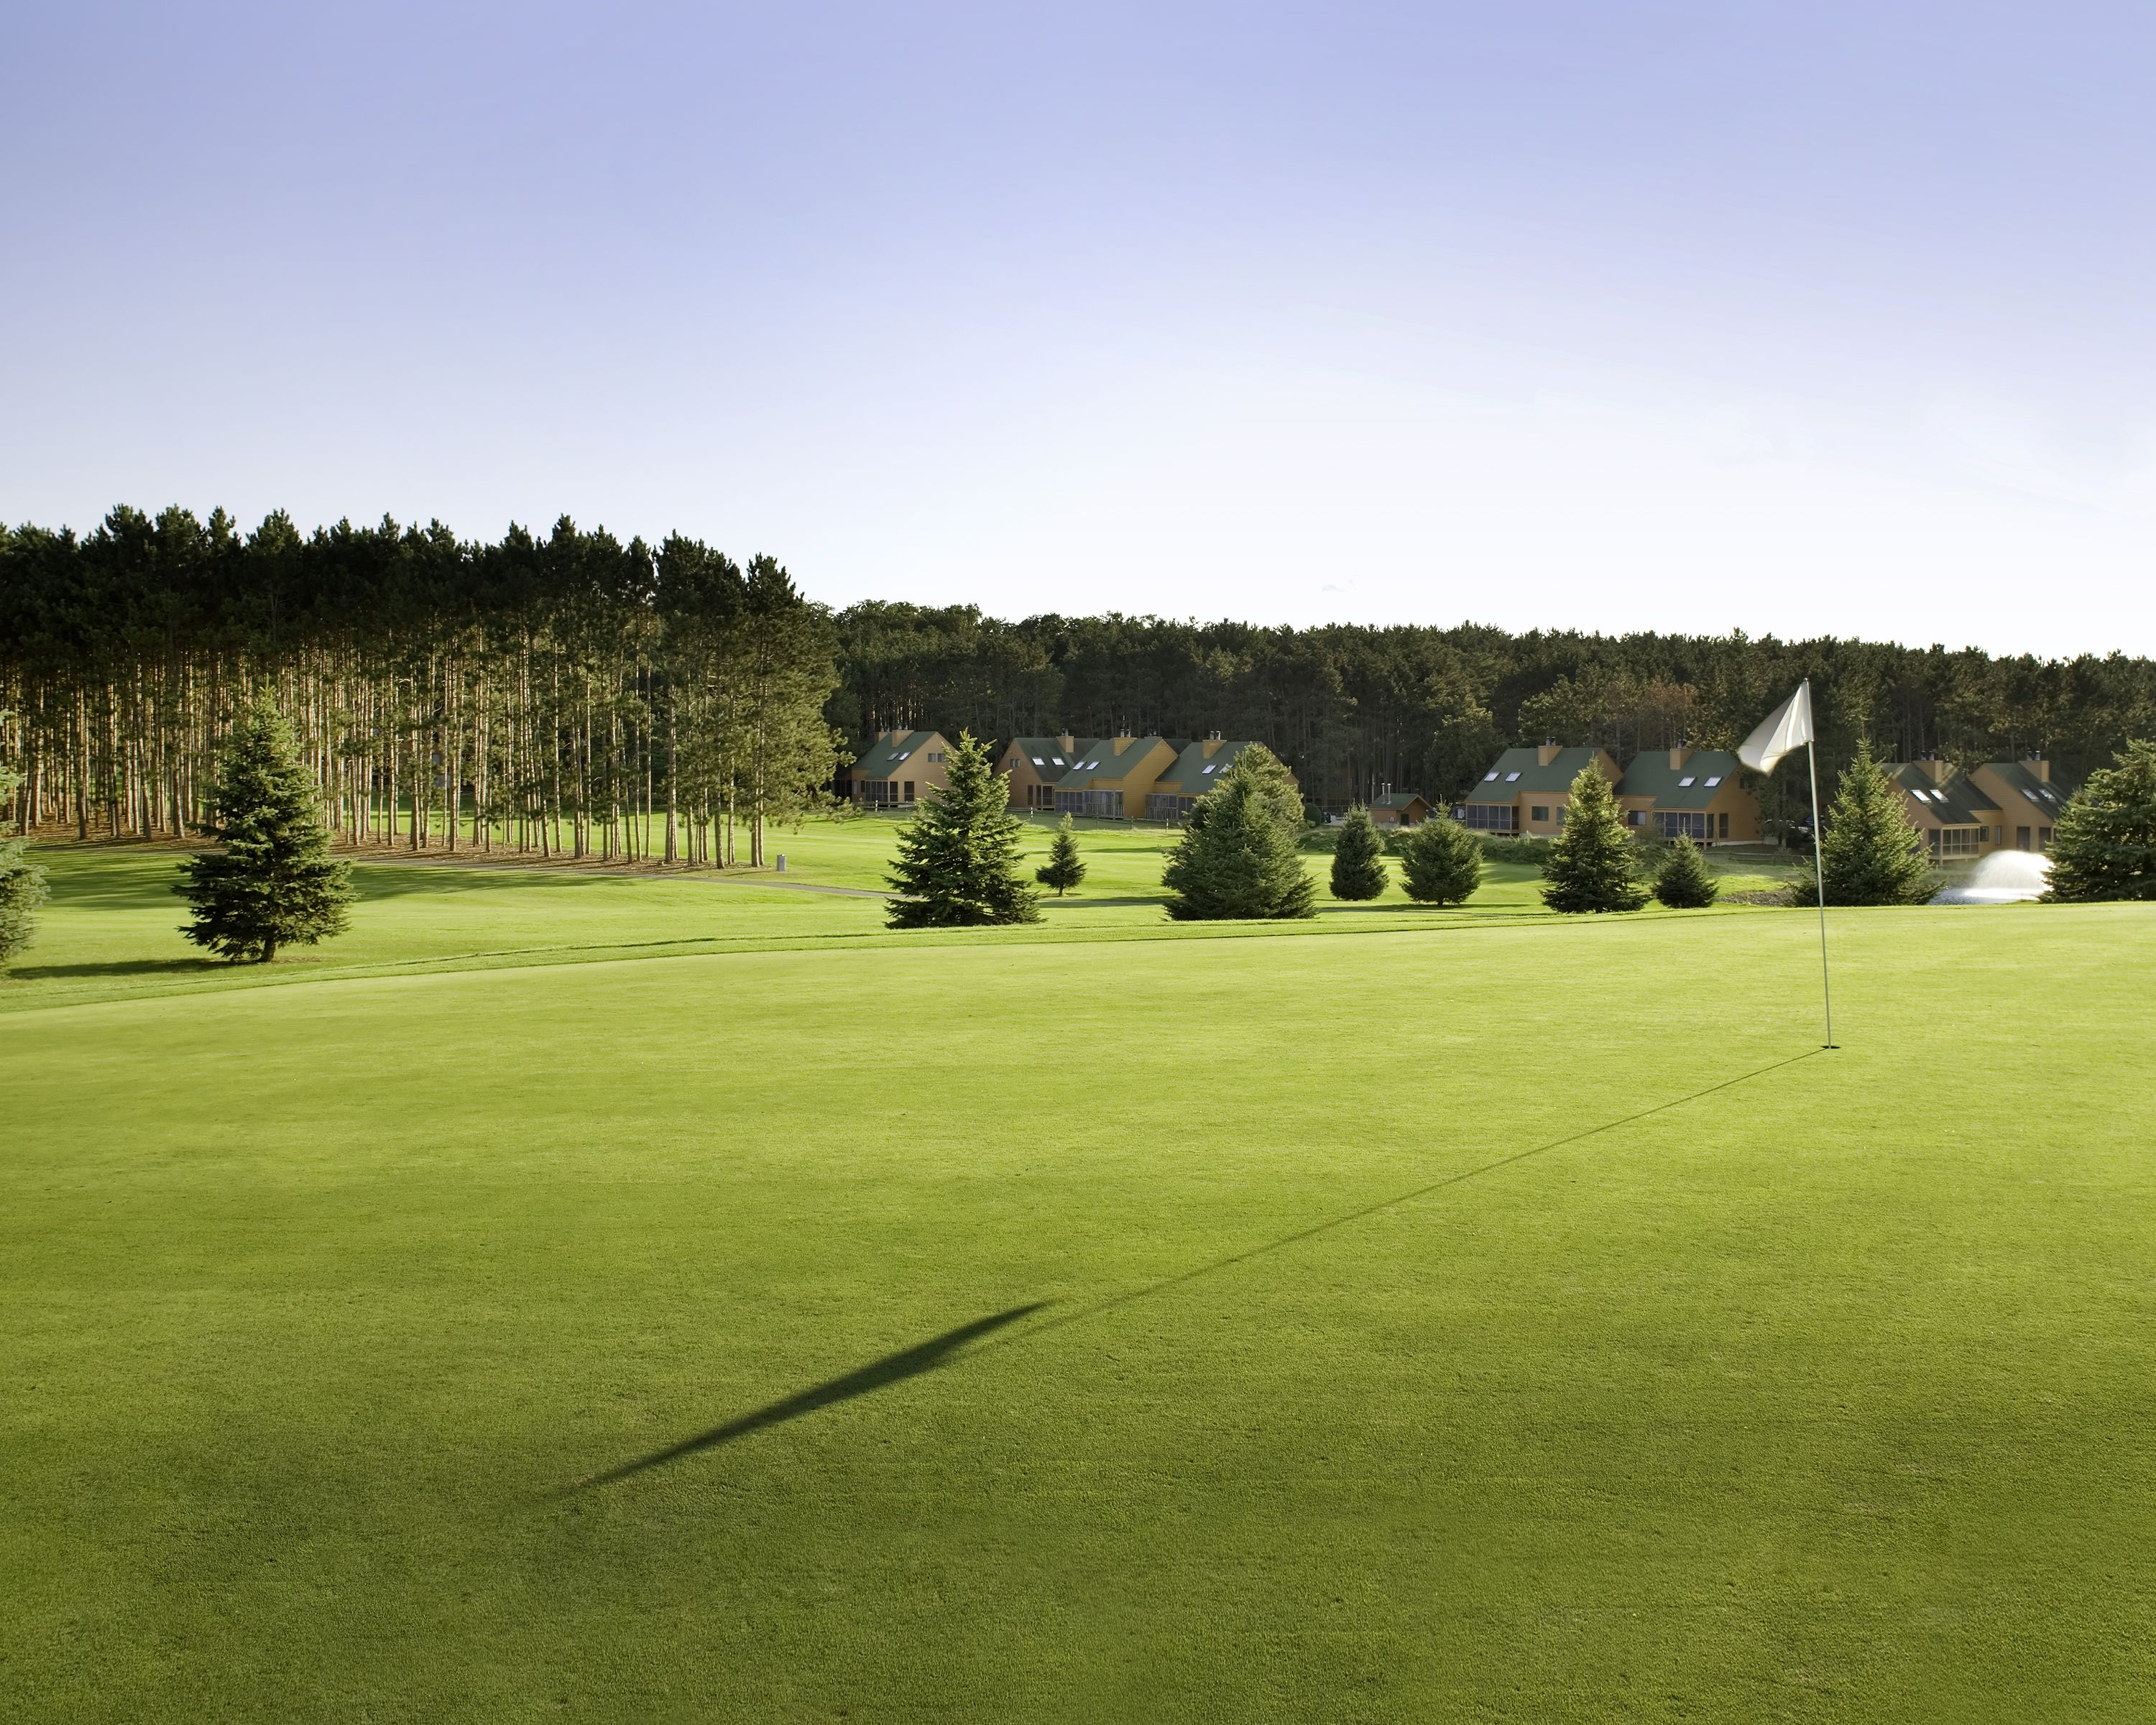 bluegreen vacations christmas mountain village an ascend resort in wisconsin dells wi has two on site courses ideal for newlyweds who love golf outings - Bluegreen Christmas Mountain